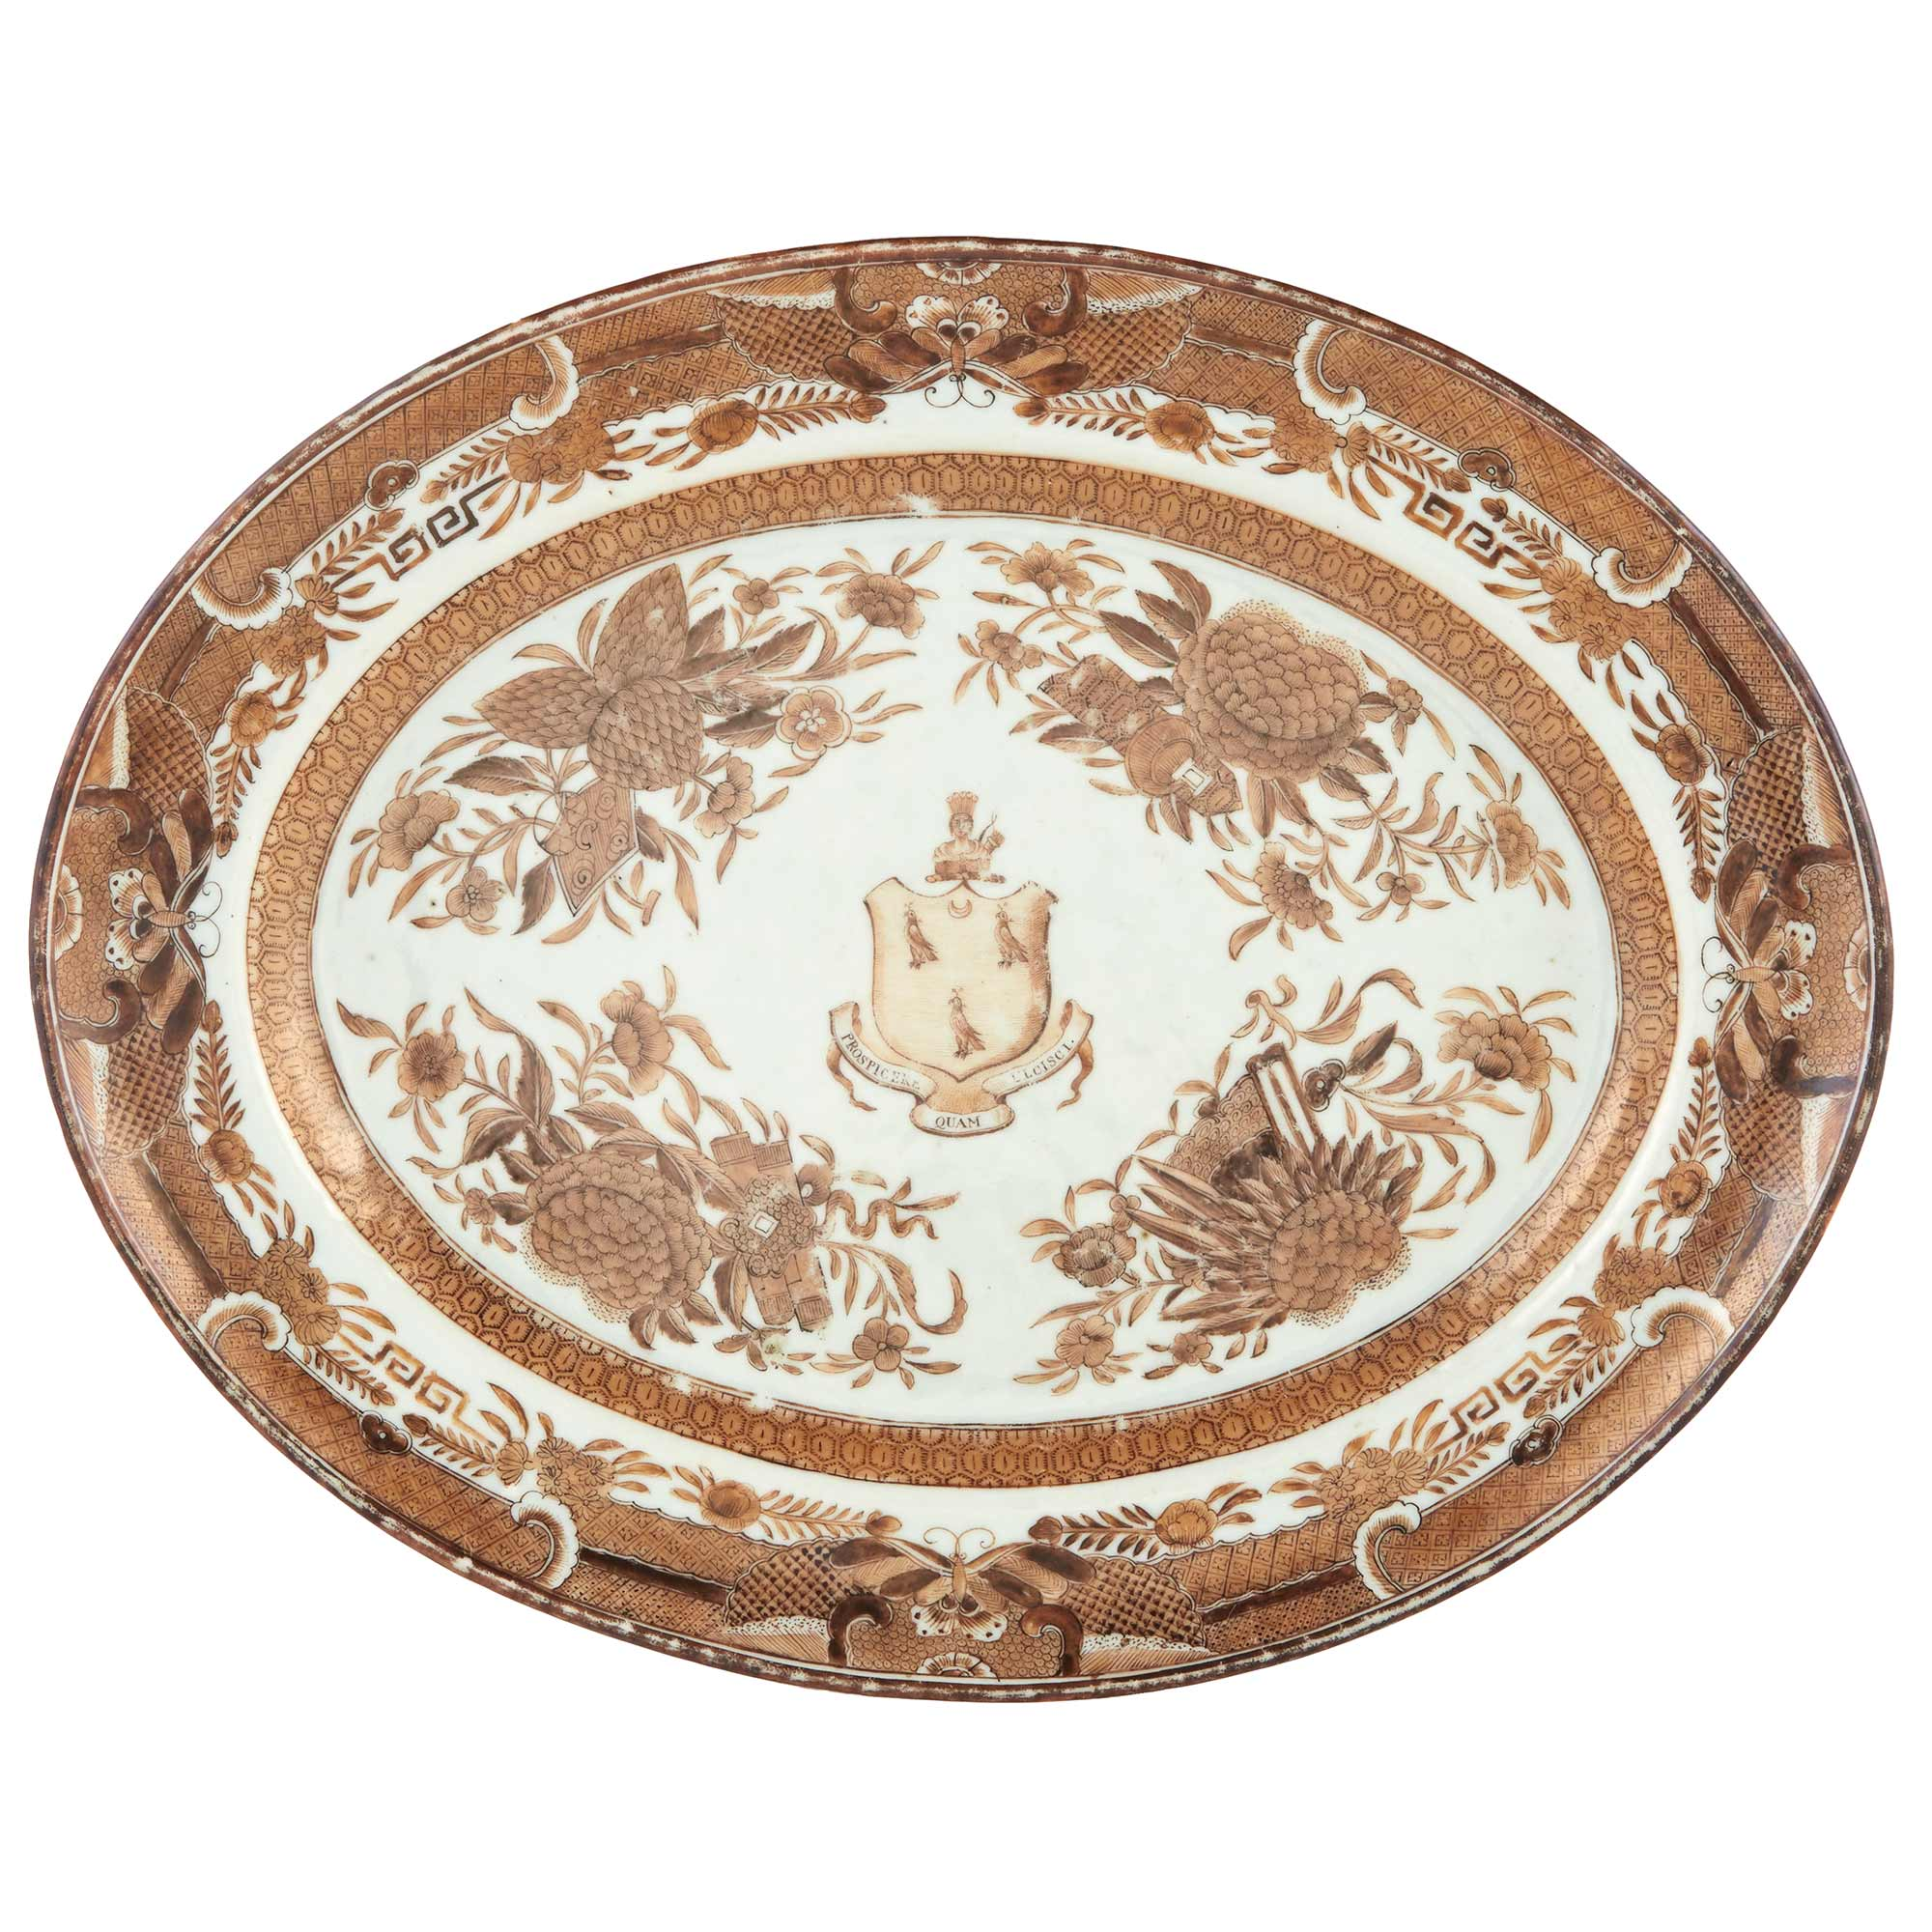 Lot image - Chinese Export Brown Fitzhugh Armorial Porcelain Platter From the Manigault Service